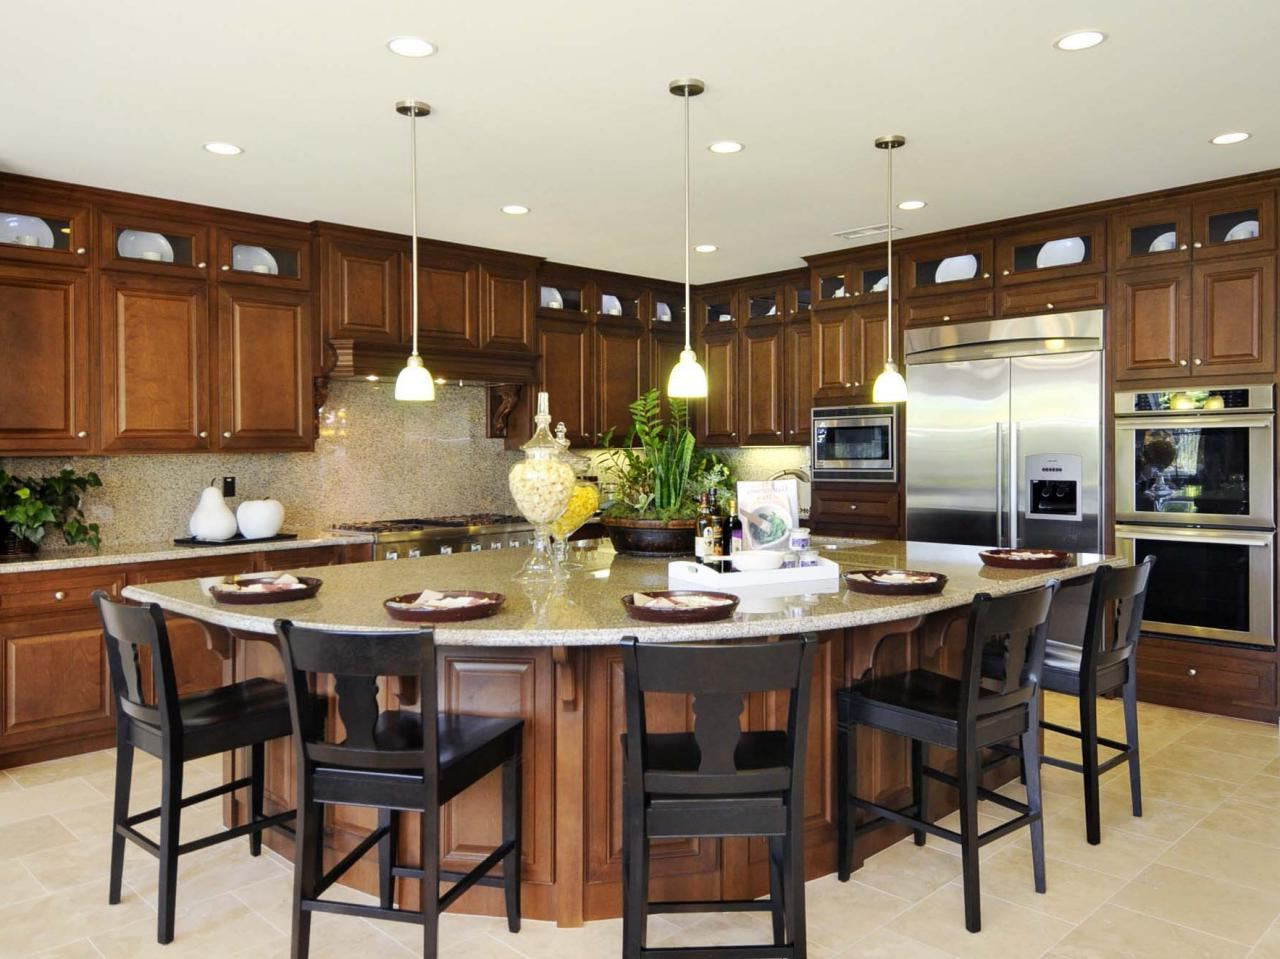 Best ideas about DIY Kitchen Island With Seating . Save or Pin Walnut wood dining chairs diy kitchen island with seating Now.